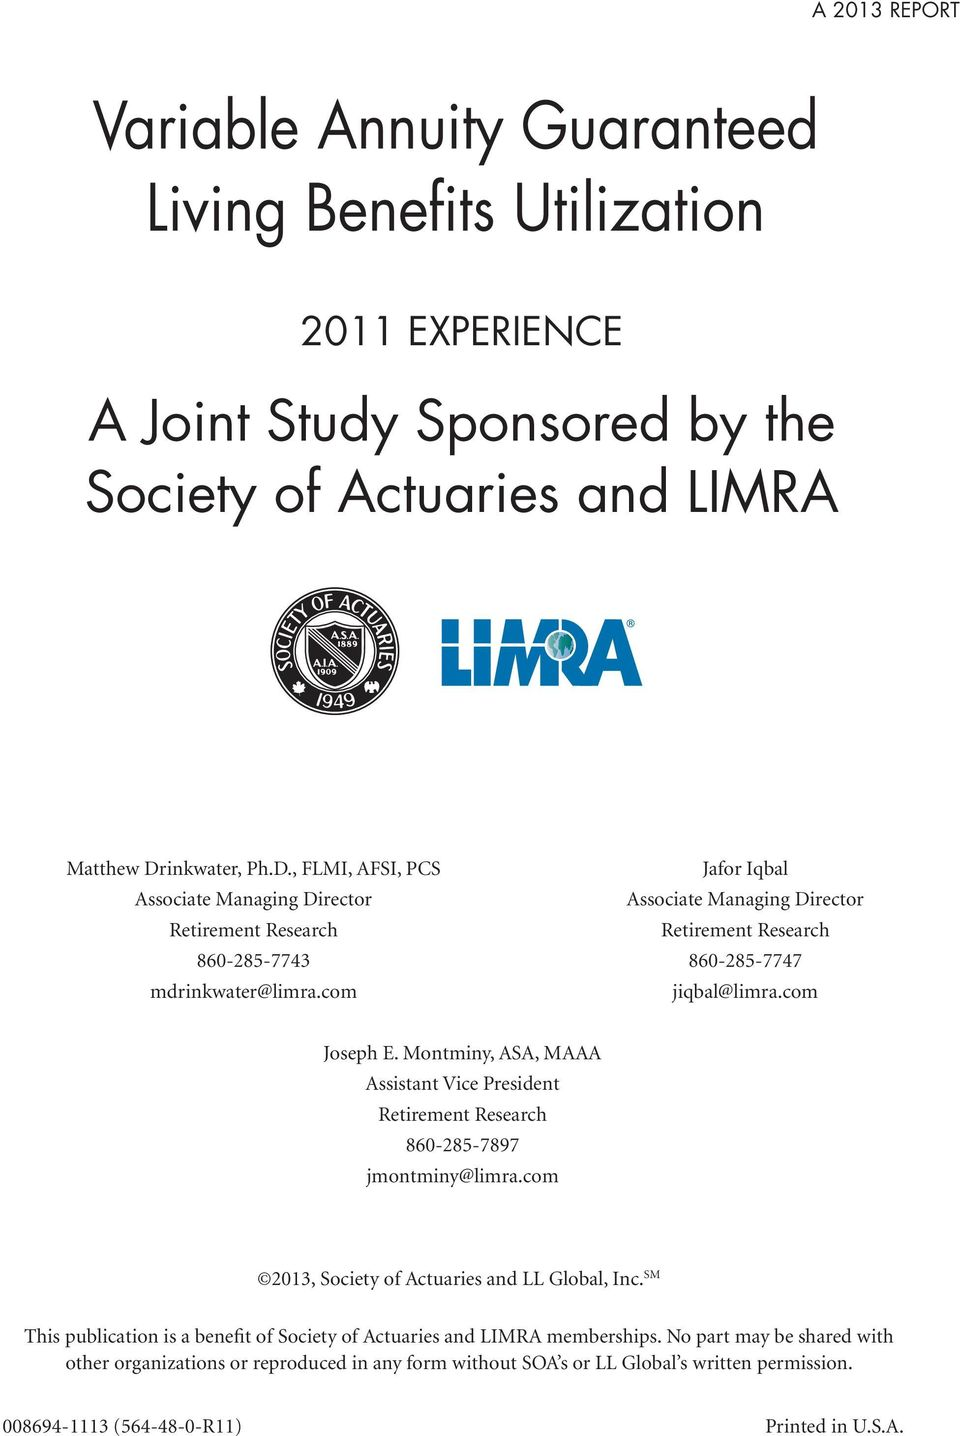 com jiqbal@limra.com Joseph E. Montminy, ASA, MAAA Assistant Vice President Retirement Research 860-285-7897 jmontminy@limra.com 2013, Society of Actuaries and LL Global, Inc.